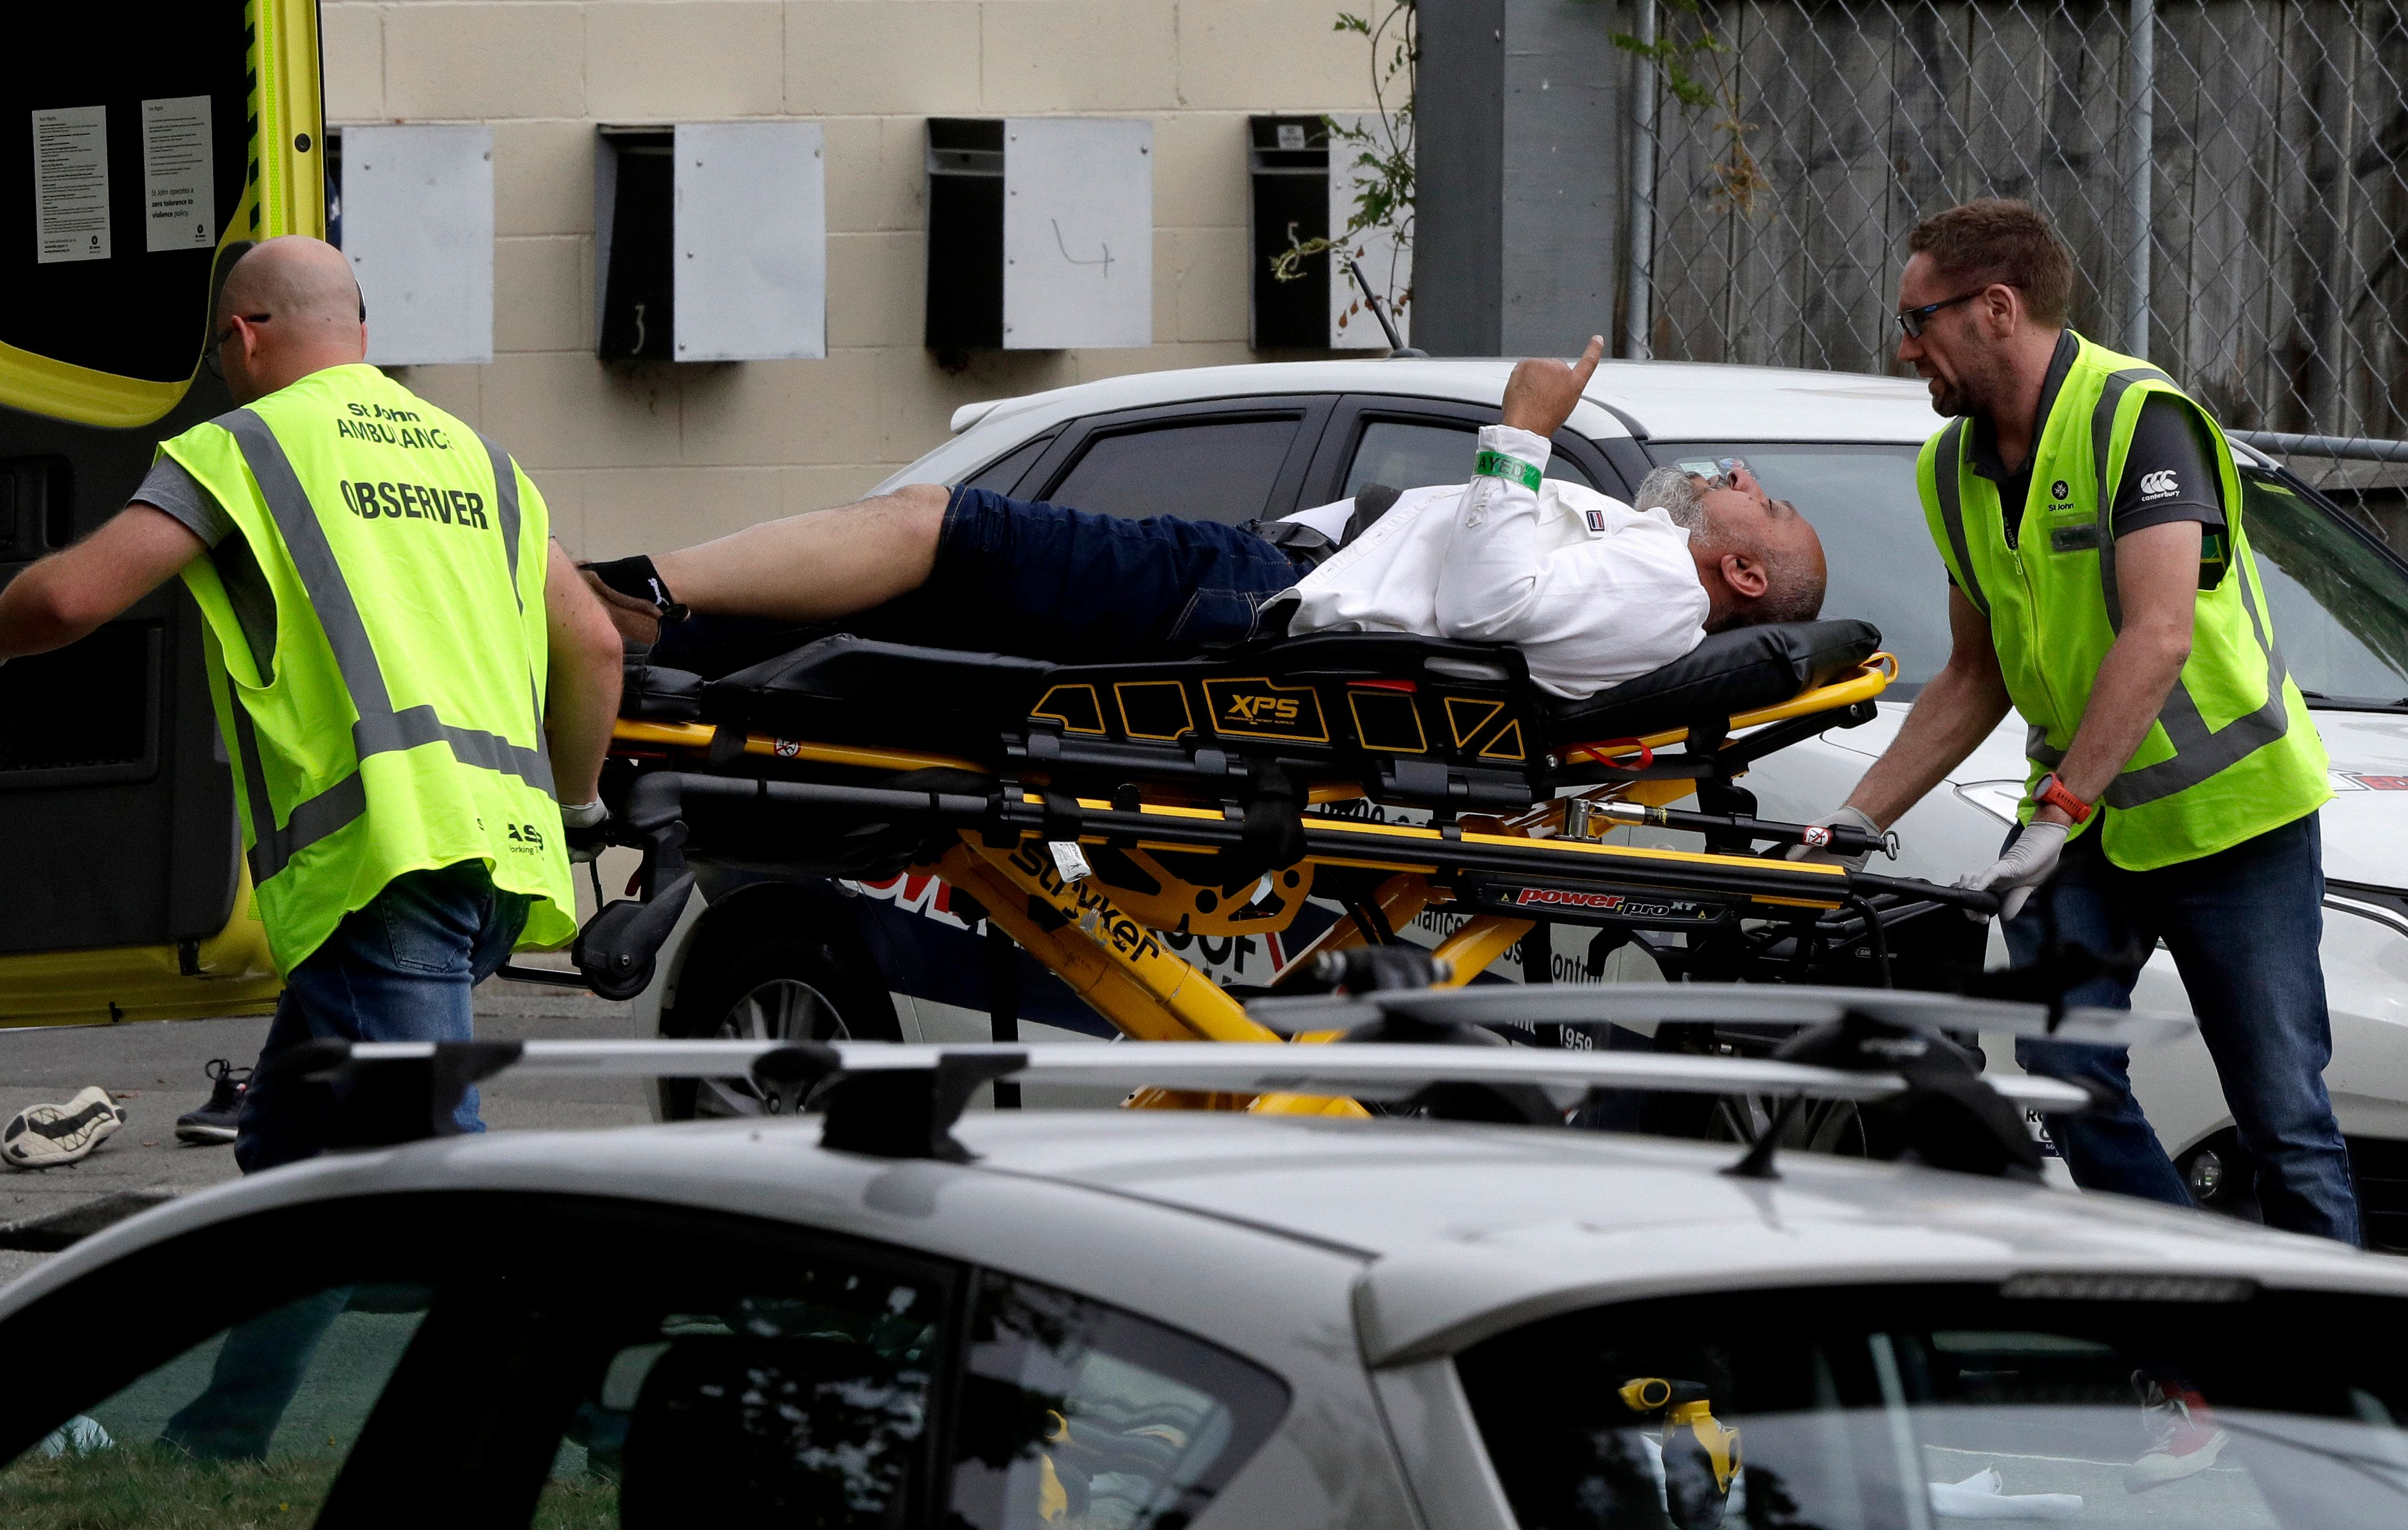 Police responded to mass shootings at mosques in Christchurch, New Zealand on Friday.